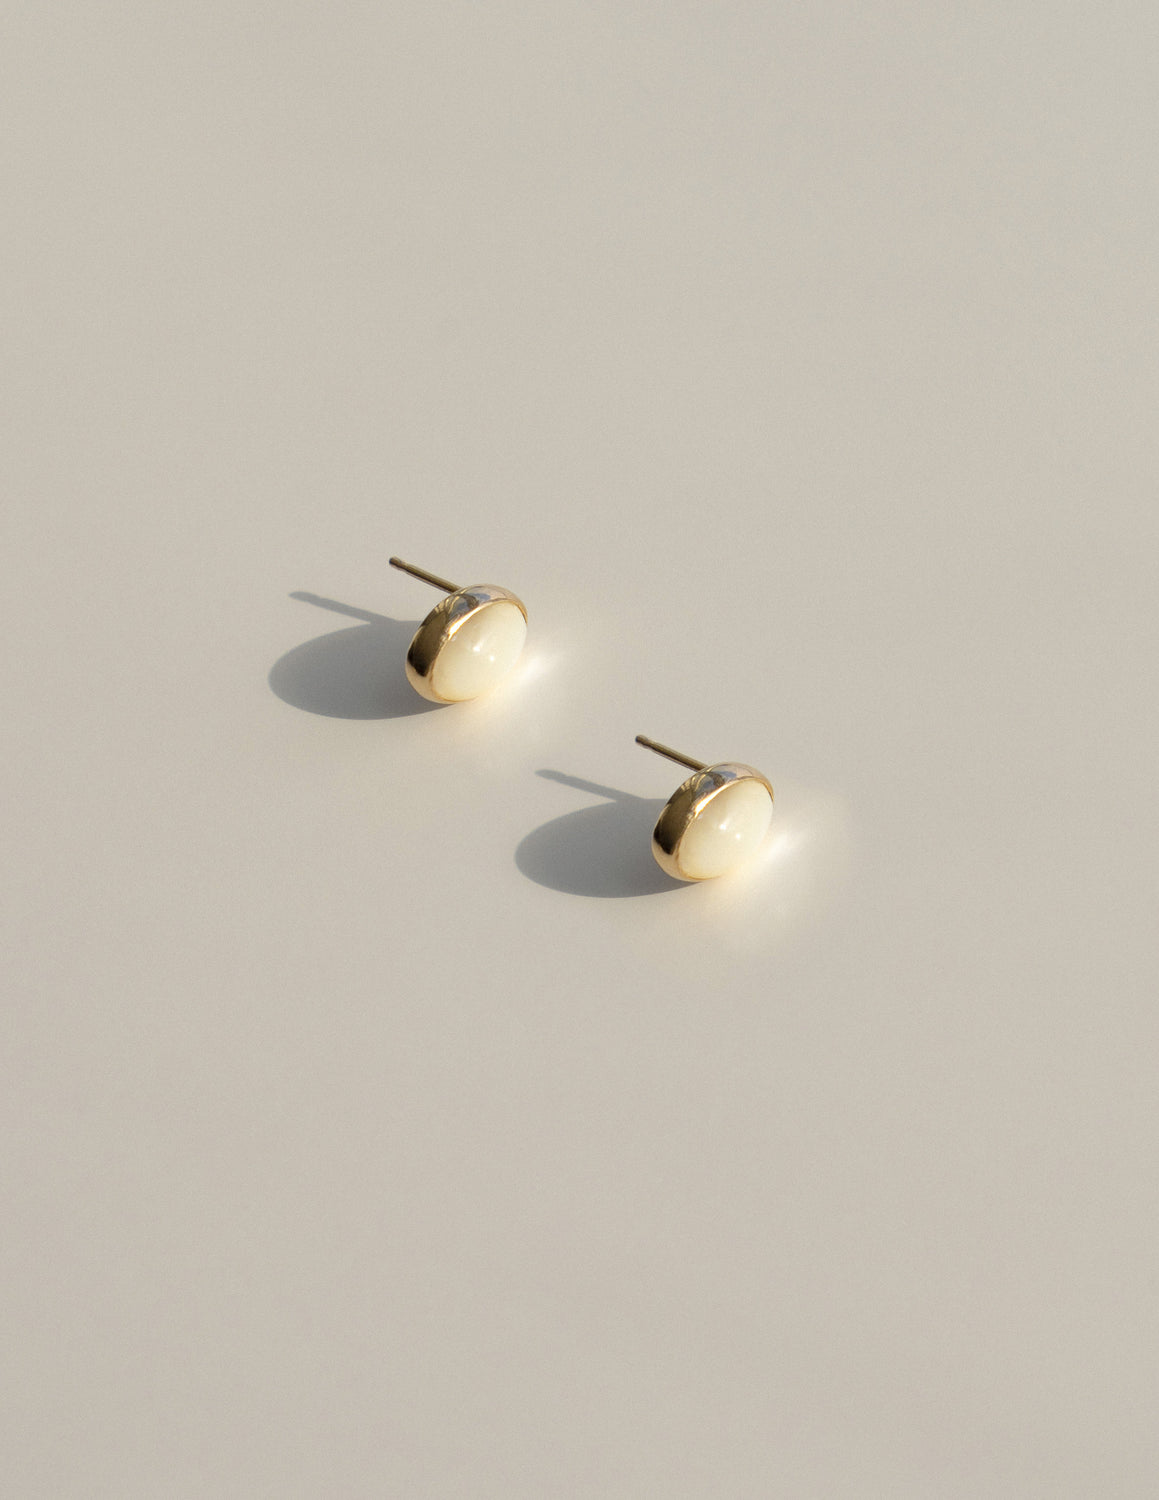 Ciel Studs in Mother of Pearl